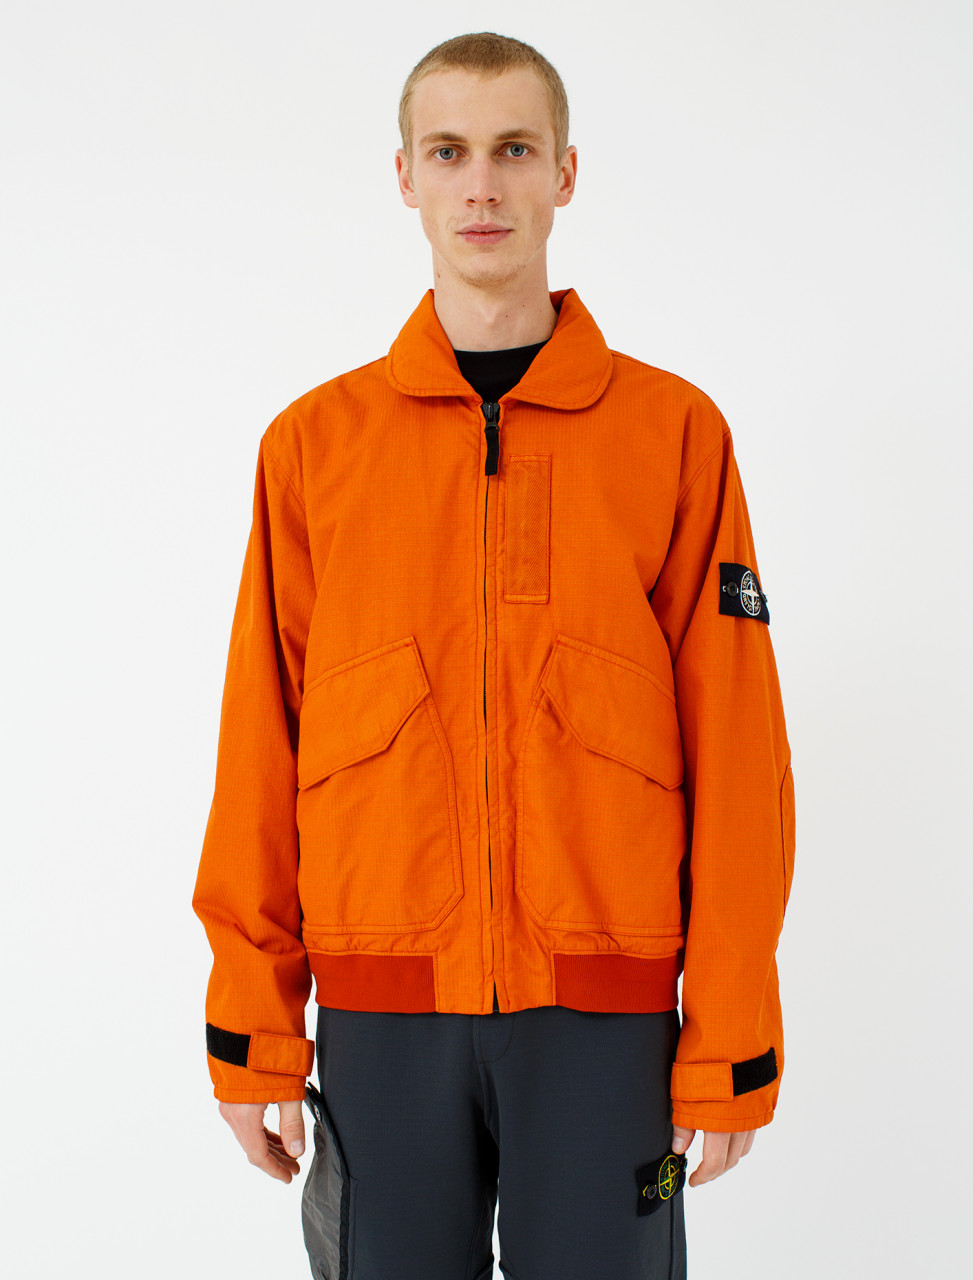 Jacket in Orange